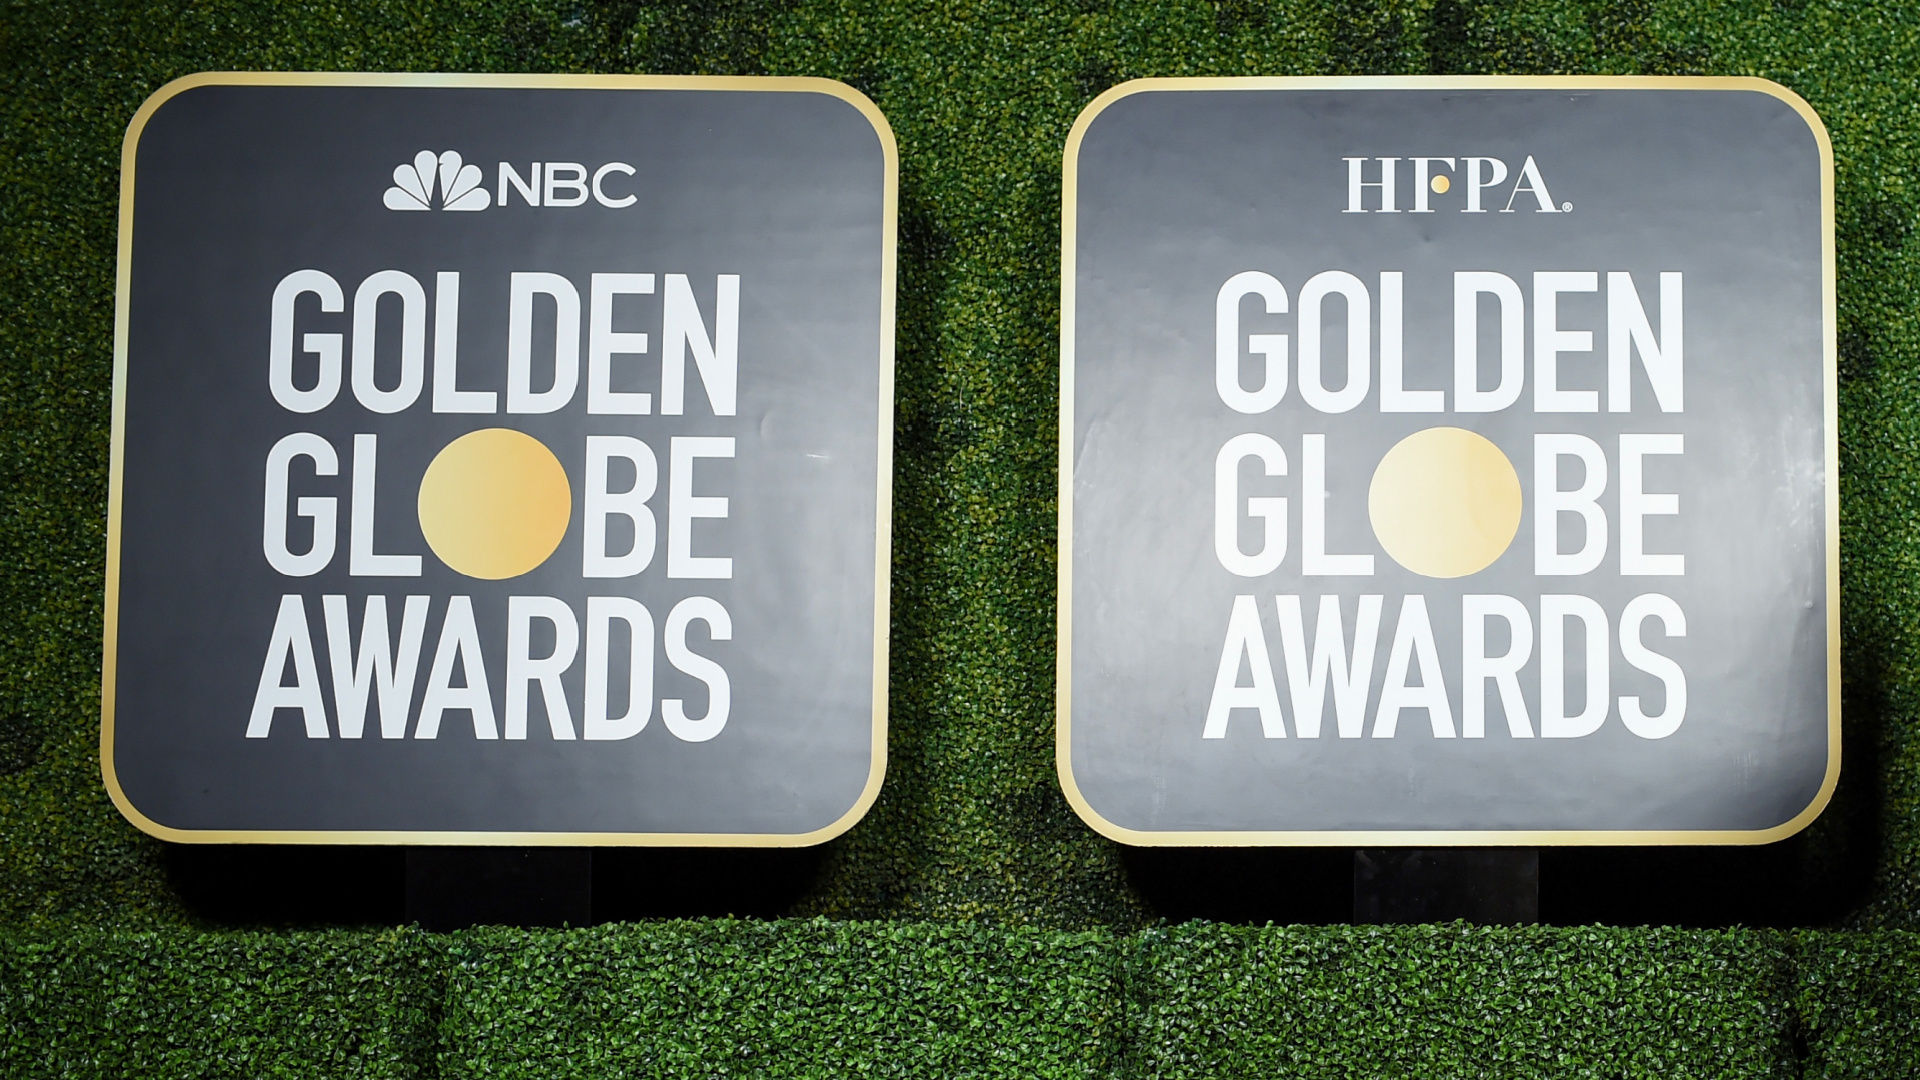 Signs for the 78th Annual Golden Globe® Awards are seen at The Rainbow Room on Feb. 28, 2021, in New York City. (Dimitrios Kambouris/Getty Images for Hollywood Foreign Press Association)